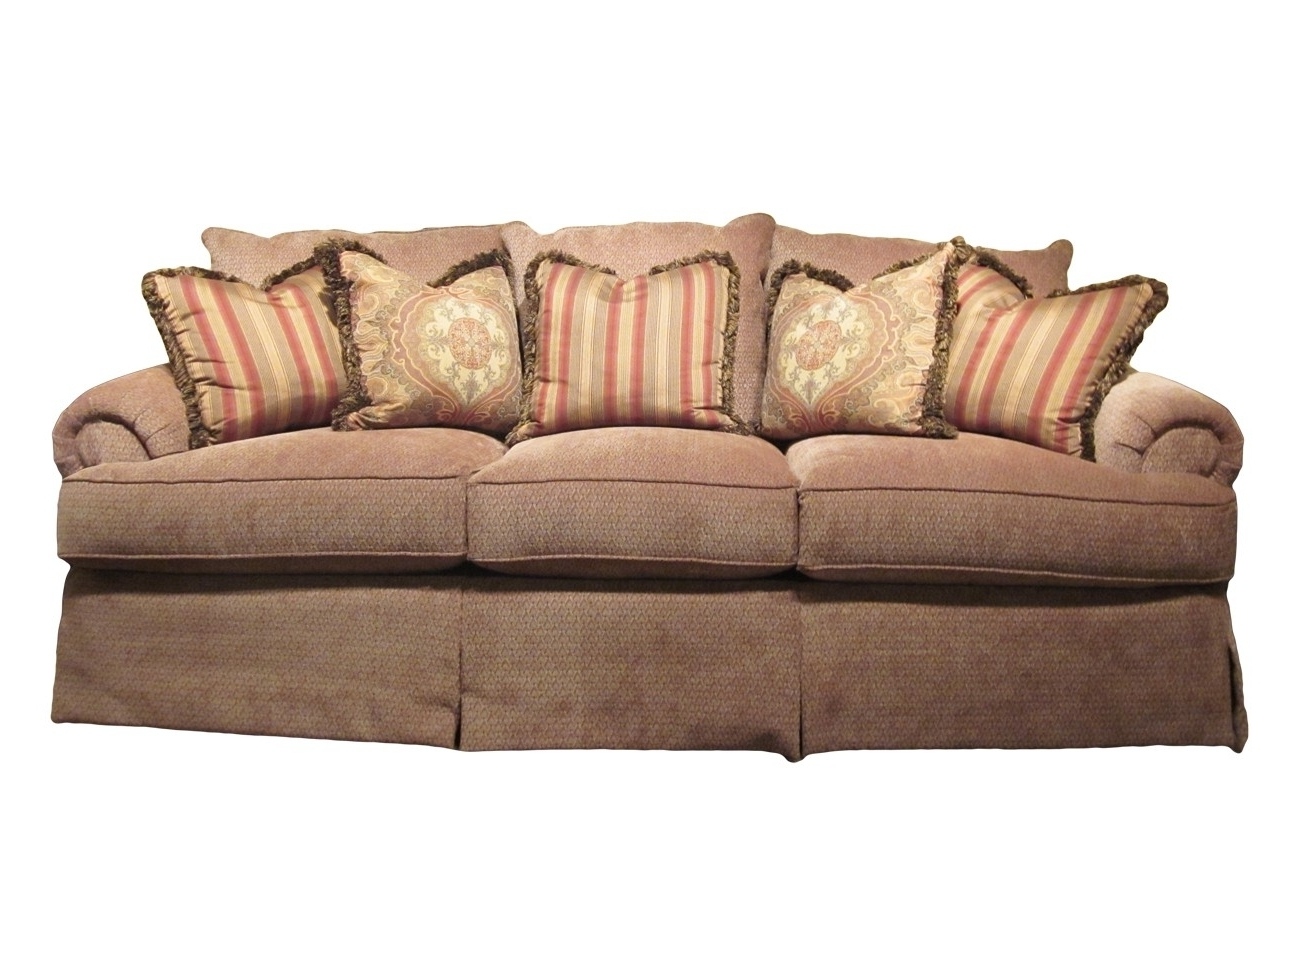 Most Recent Furniture: Gorgeous Thomasville Sectional Sofas For Home Furniture Within Thomasville Sectional Sofas (View 17 of 20)